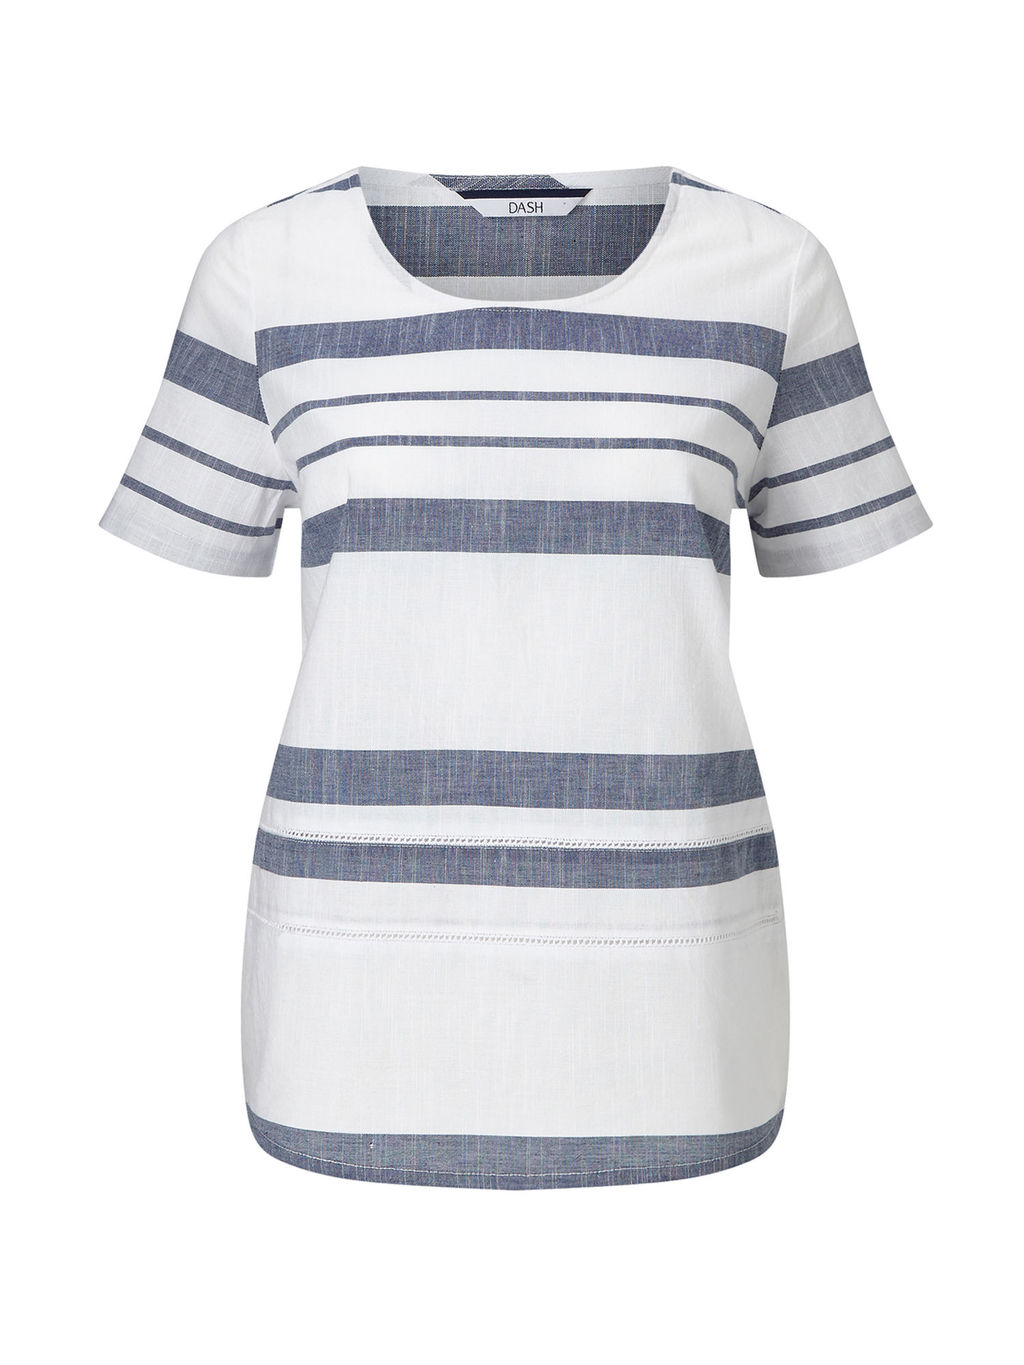 Woven Stripe Shell - pattern: horizontal stripes; style: t-shirt; predominant colour: white; secondary colour: denim; occasions: casual; length: standard; fibres: cotton - 100%; fit: straight cut; neckline: crew; sleeve length: short sleeve; sleeve style: standard; texture group: cotton feel fabrics; pattern type: fabric; pattern size: standard; season: s/s 2016; wardrobe: highlight